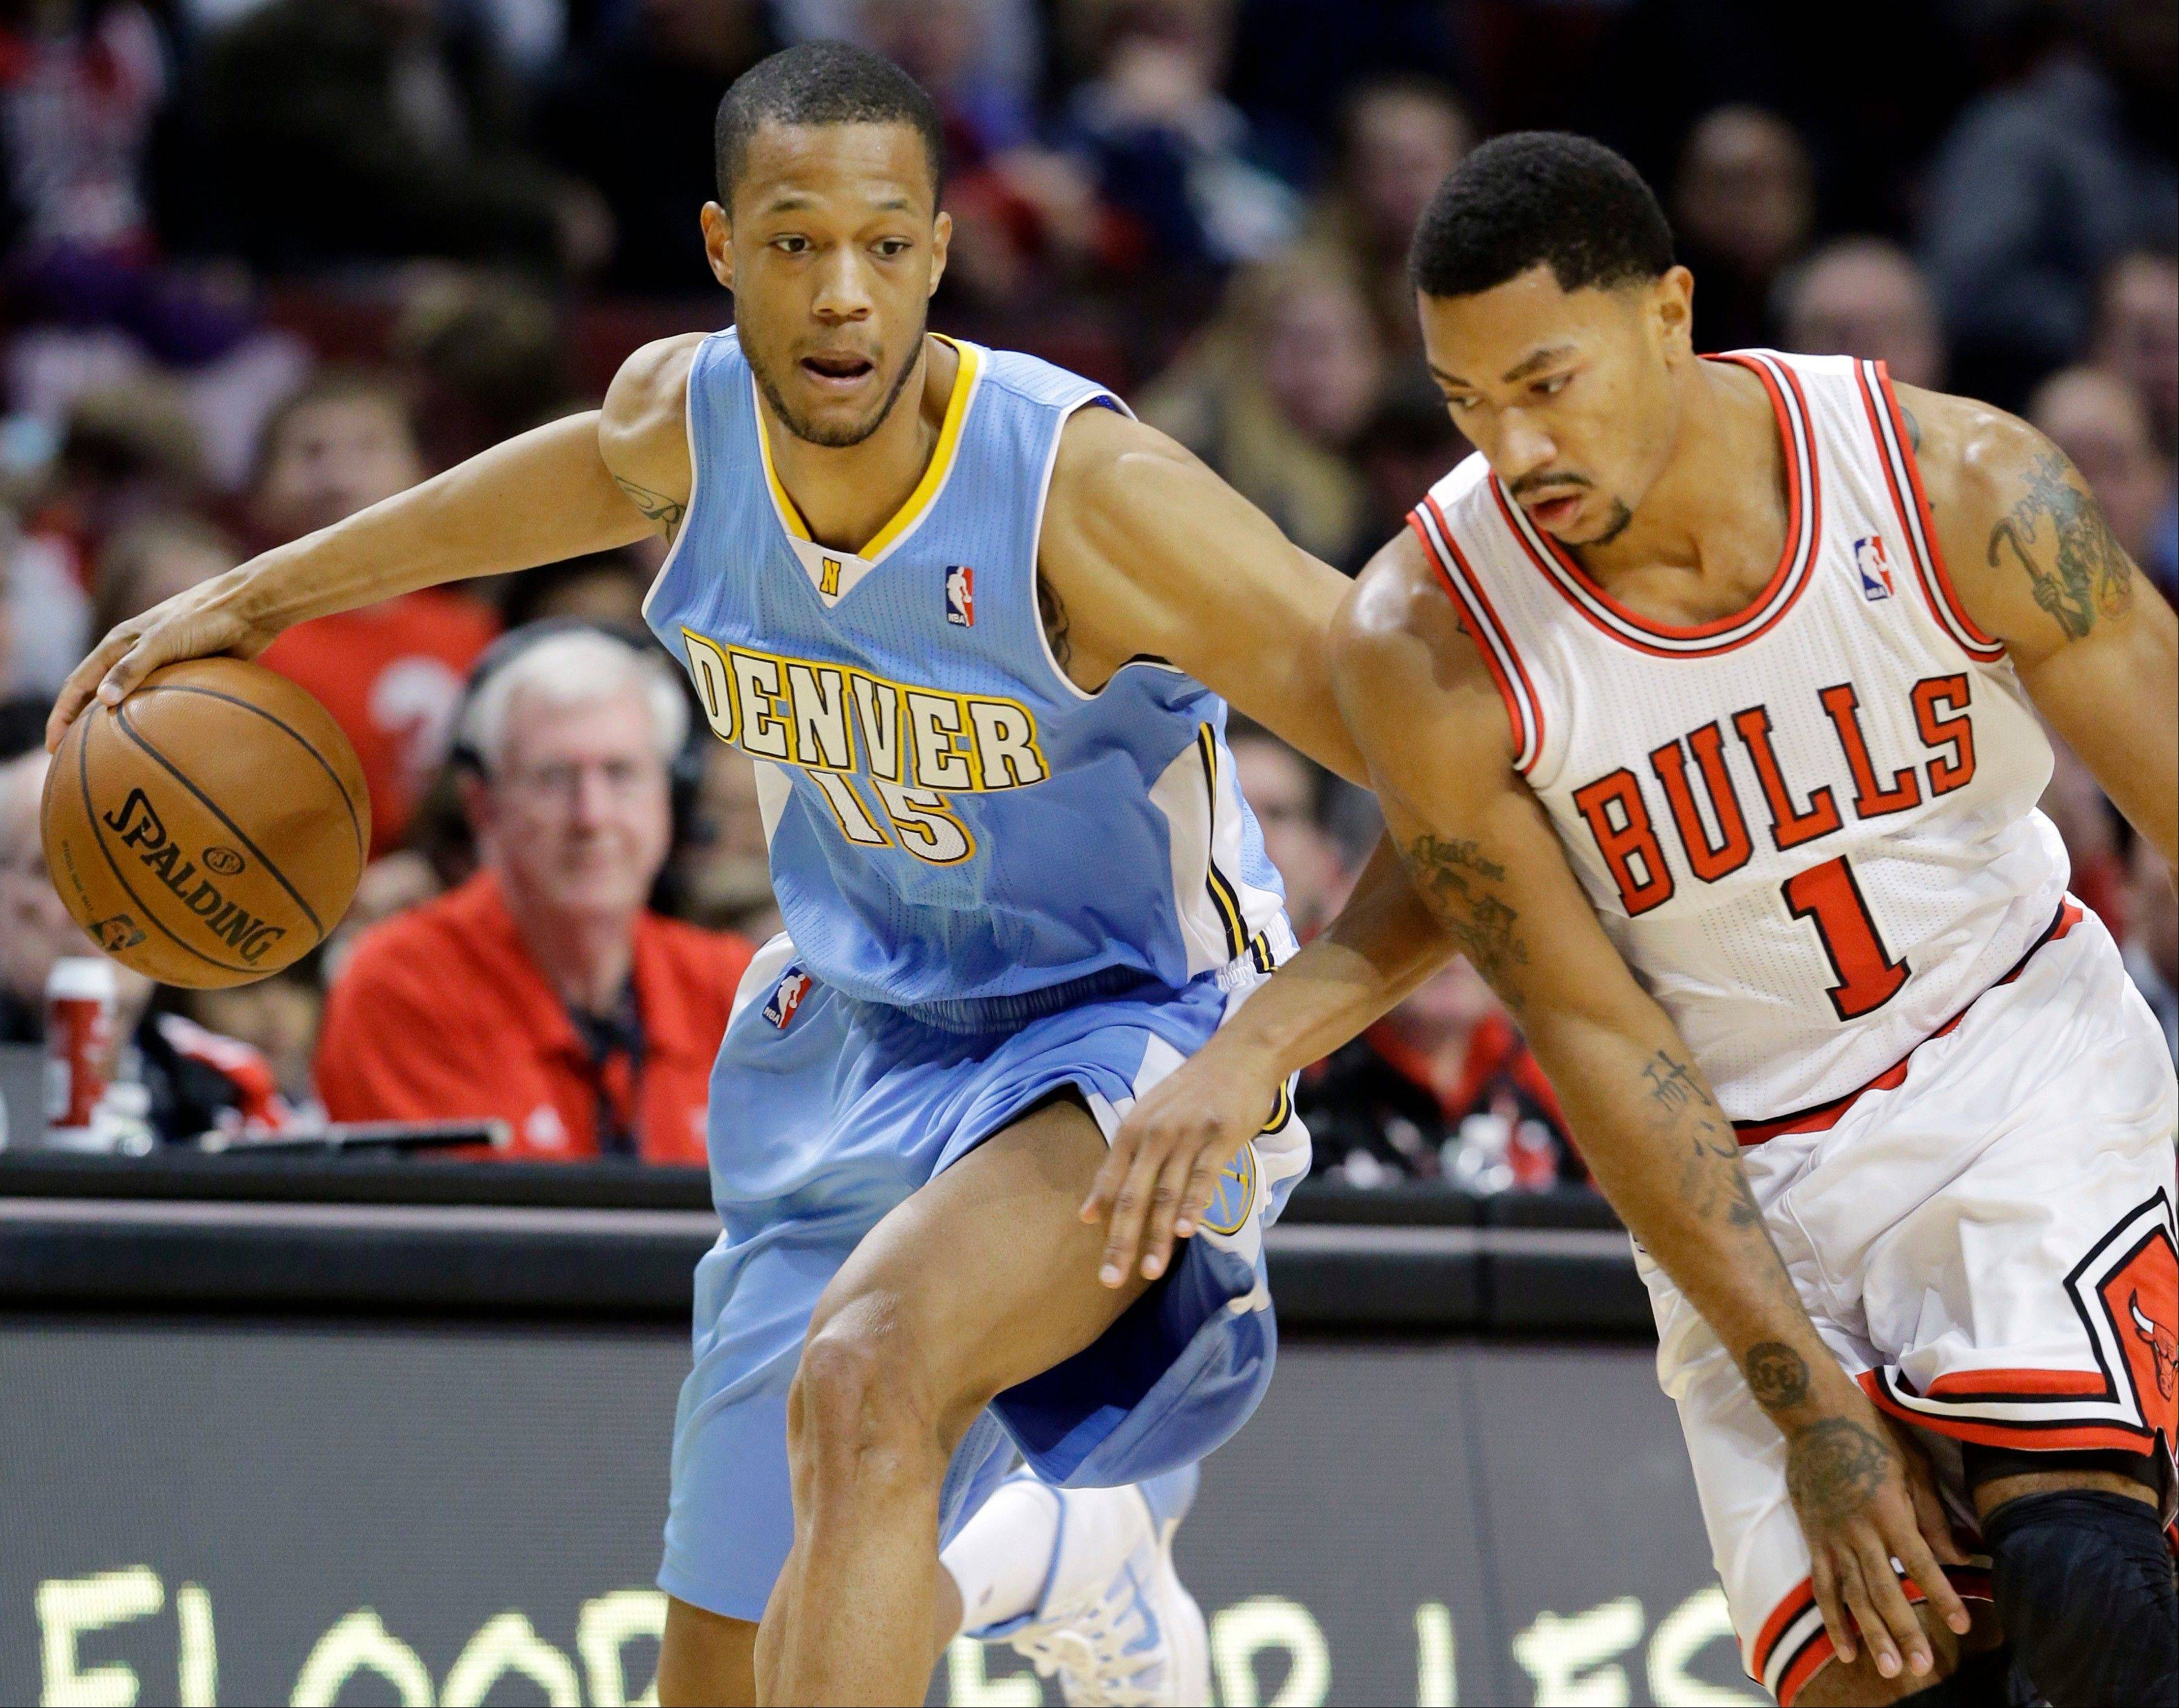 Denver Nuggets forward Anthony Randolph (15) steals the ball from Chicago Bulls guard Derrick Rose during the first half of an NBA preseason basketball game in Chicago on Friday, Oct. 25, 2013.